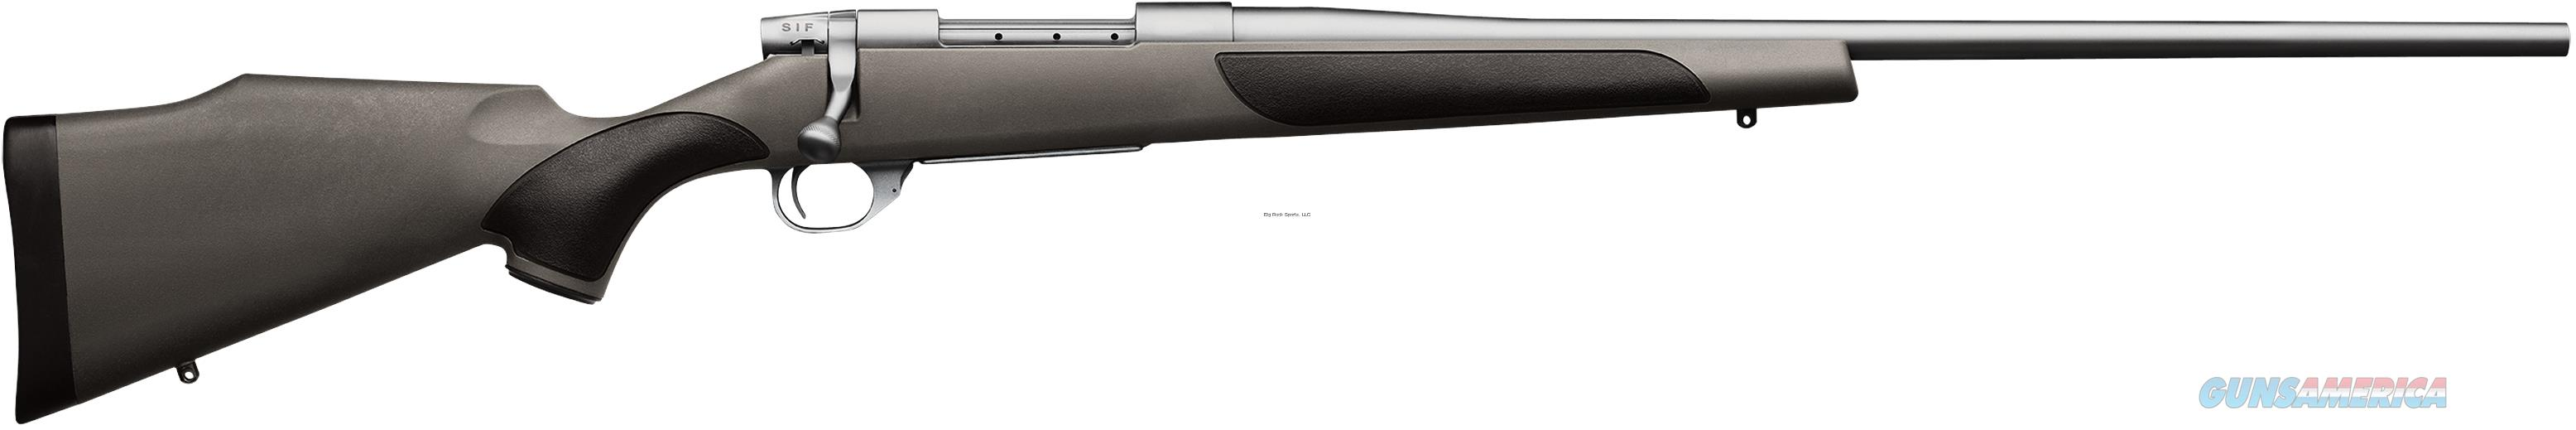 "Weatherby Vanguard Stainless Synthetic Bolt Rifle 300 Win 26"" Ss #2, Grey W/Blk Griptonite VGS300NR6O  Guns > Rifles > W Misc Rifles"